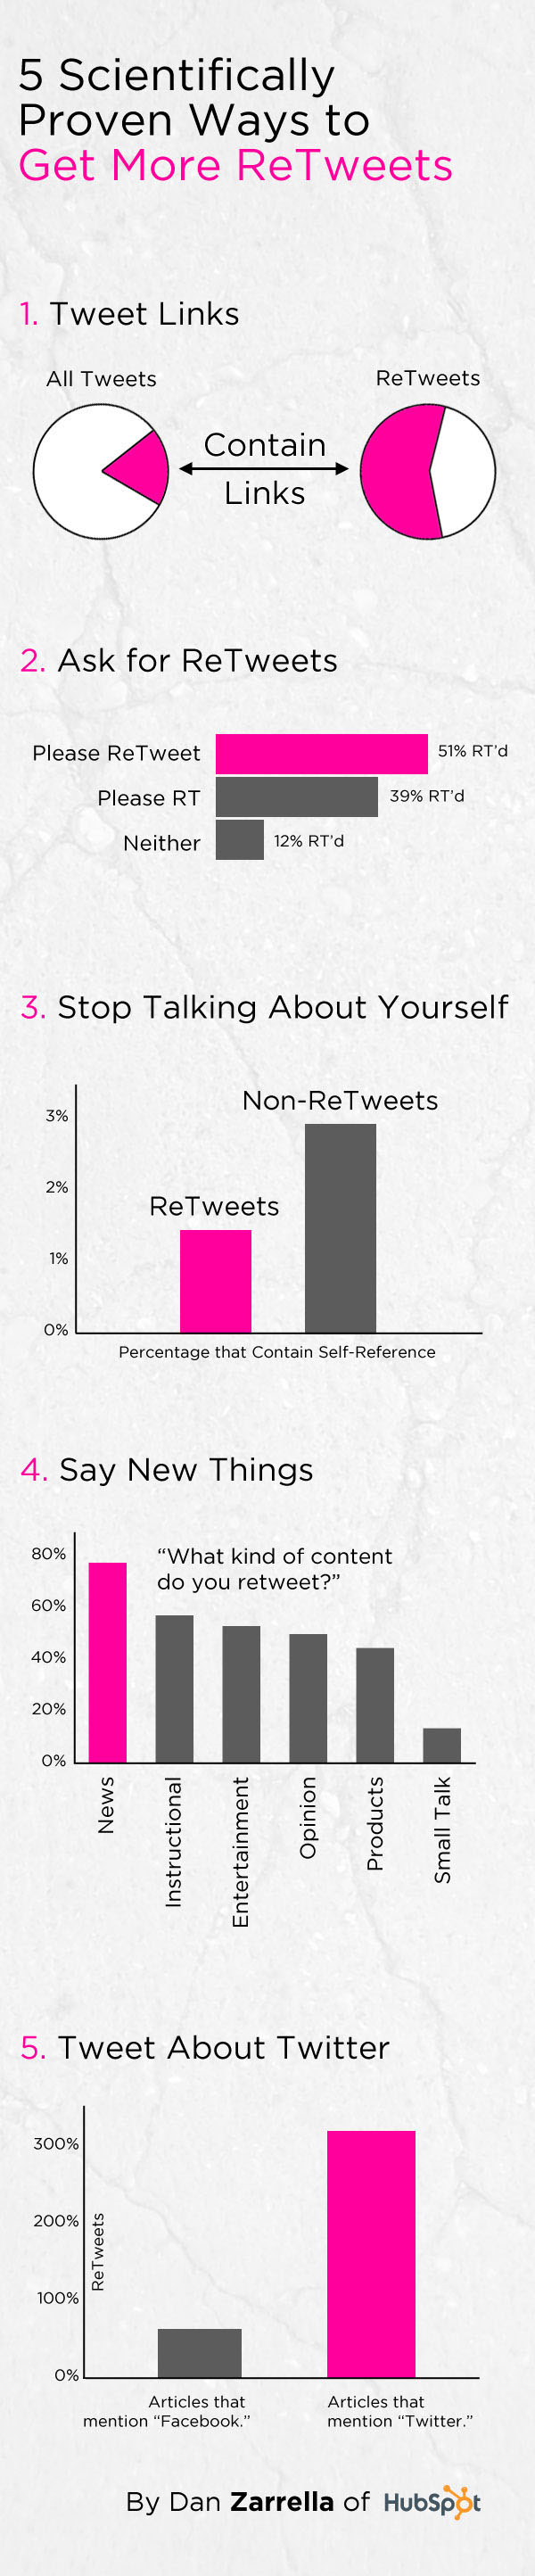 5 Scientifically Proven Ways to Get More Retweets on Twitter